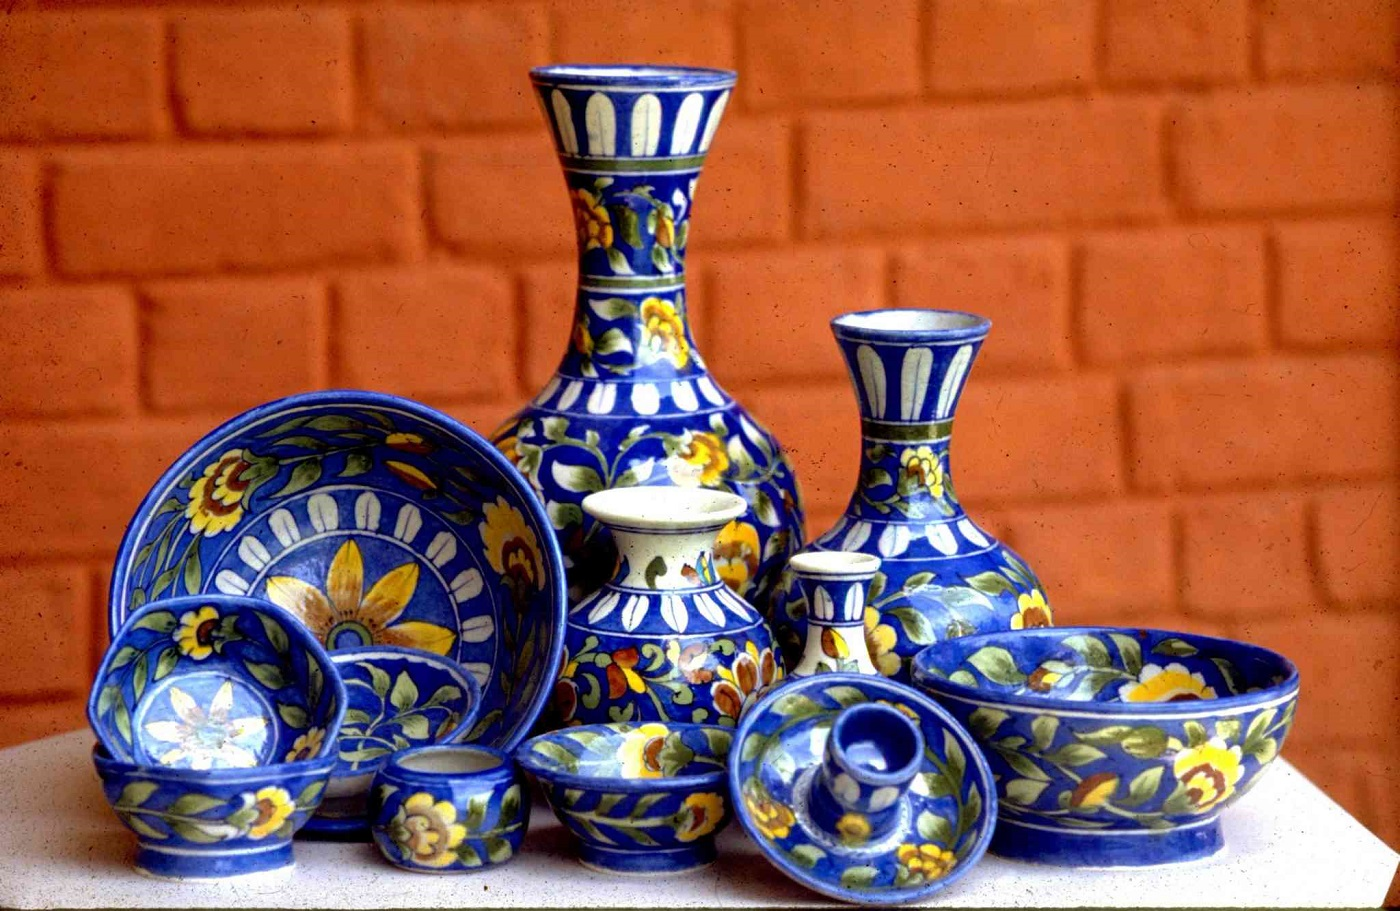 Blue Pottery Rajasthan